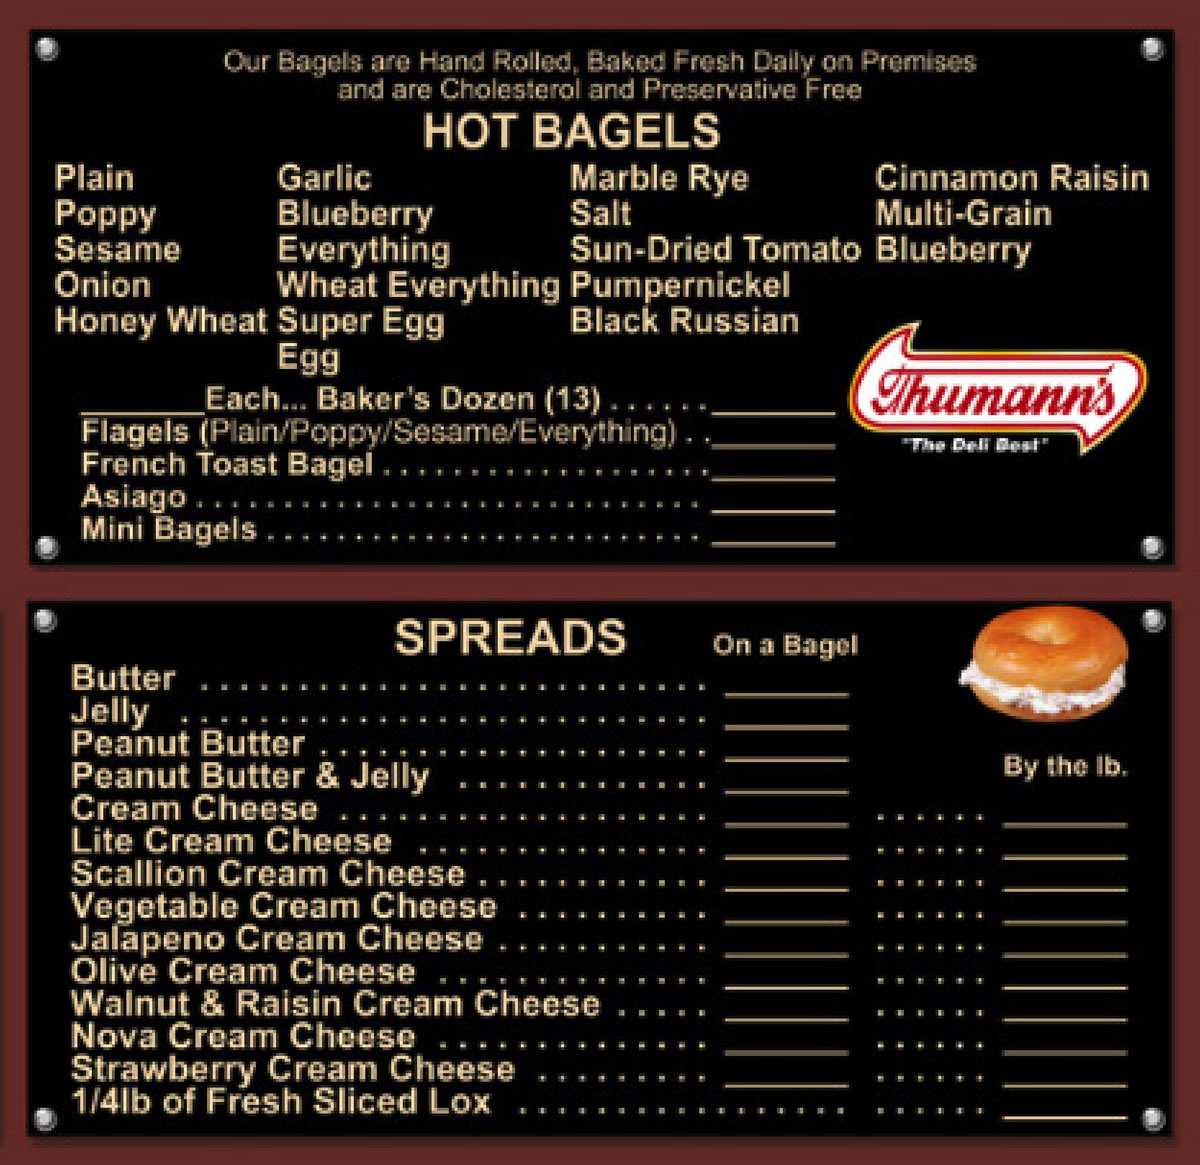 bagels-and-spreads